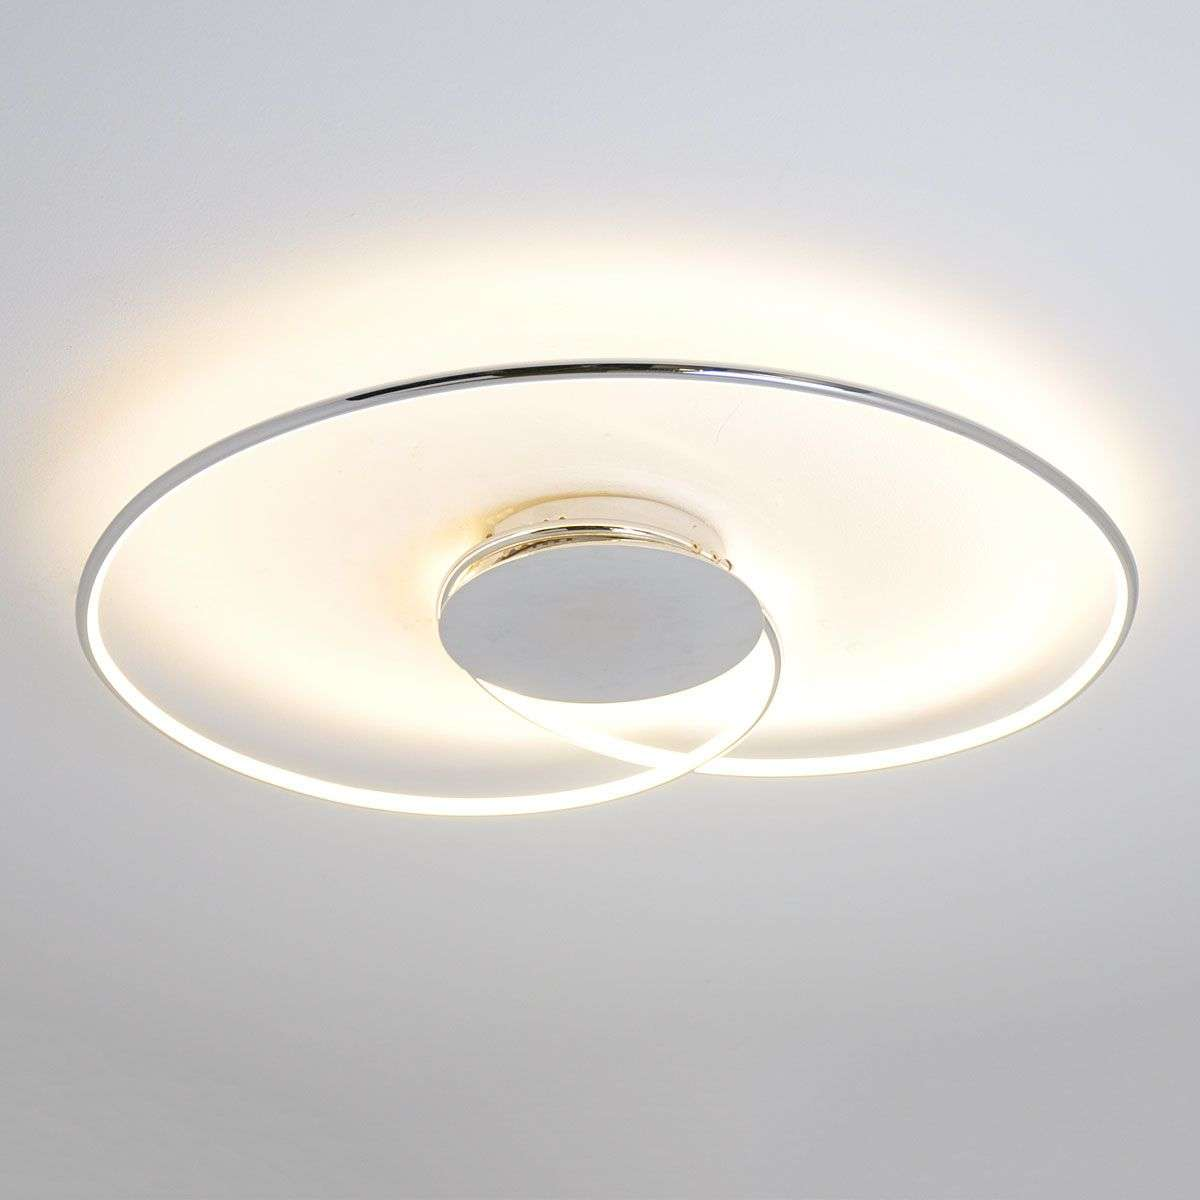 Acquista joline esile lampada led da soffitto for Lampade a led grandi